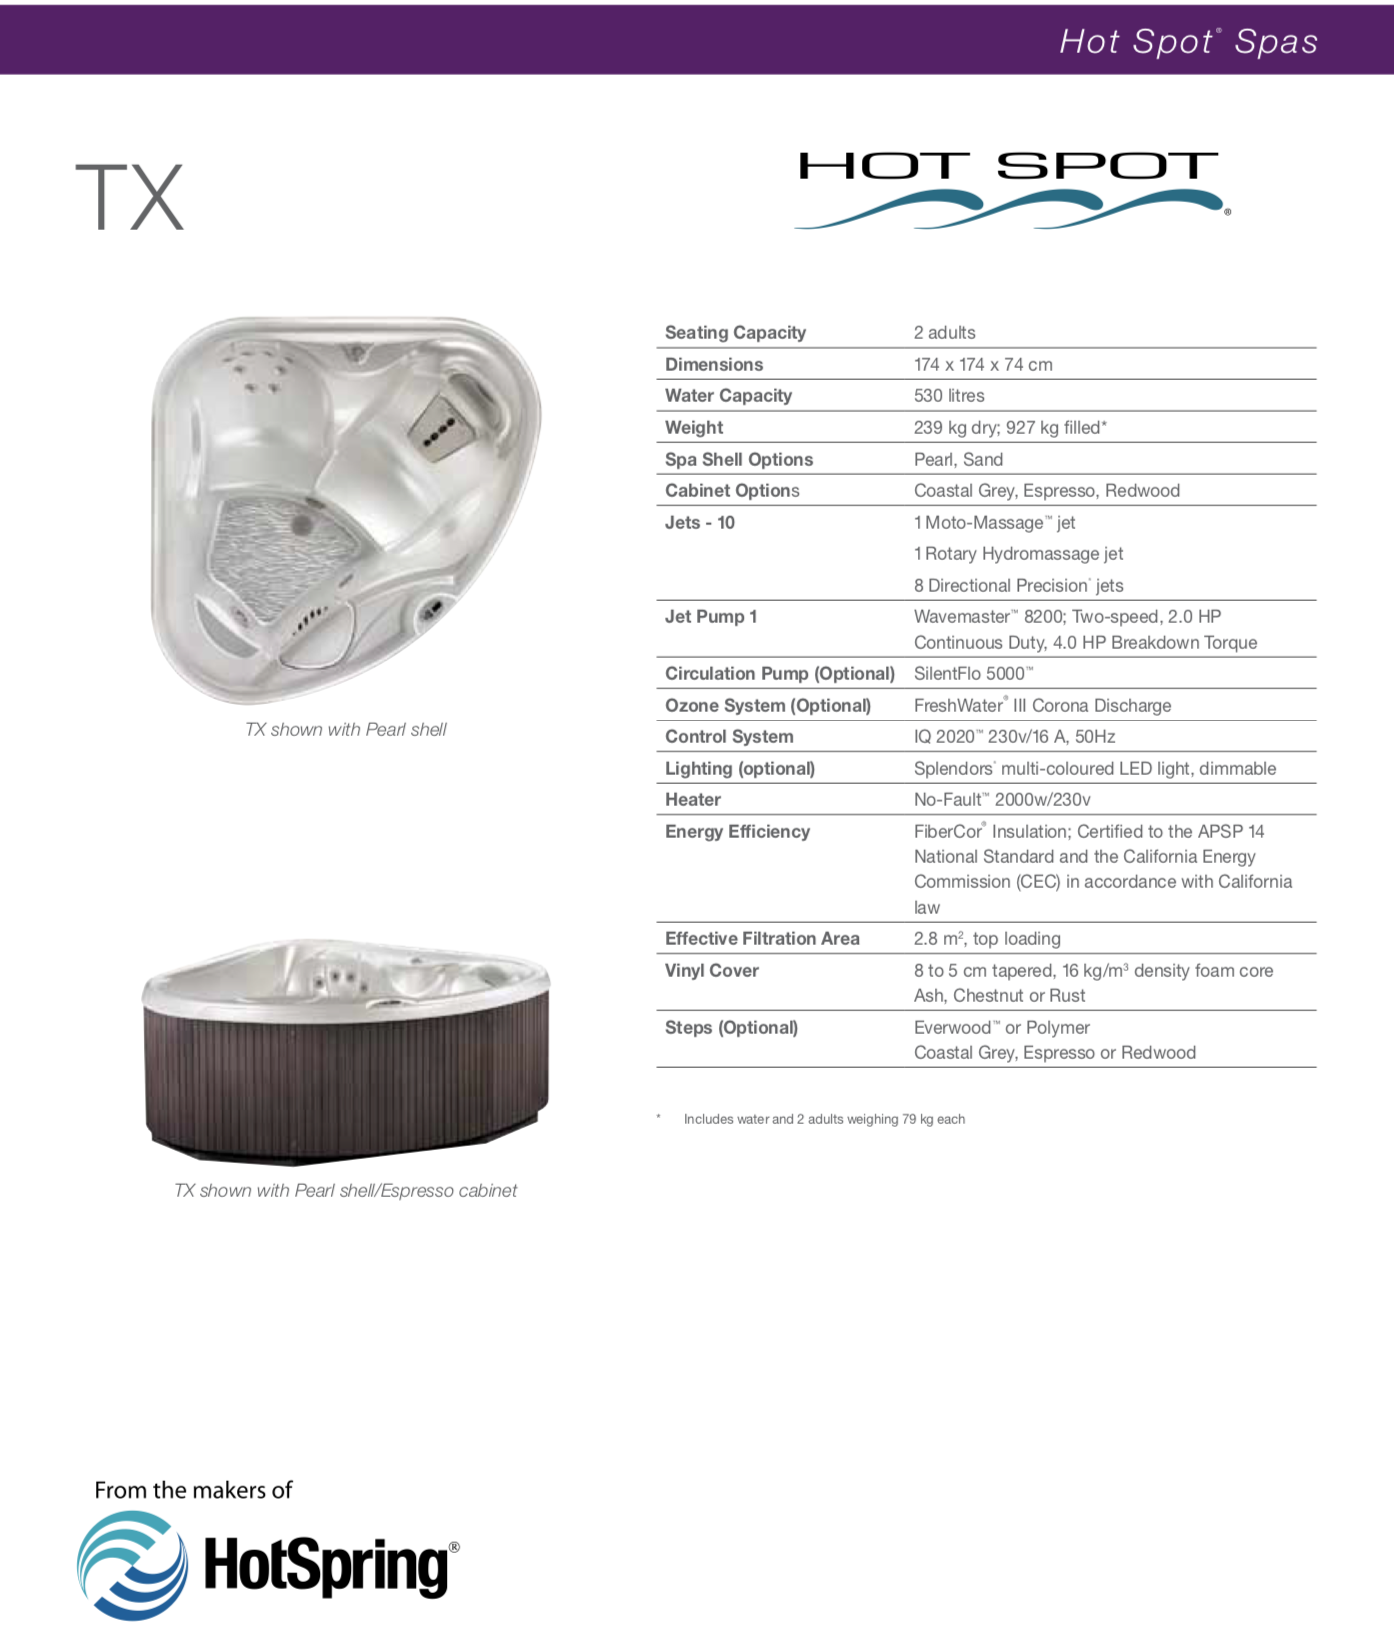 hot-spot-tx-specifications-nz.png